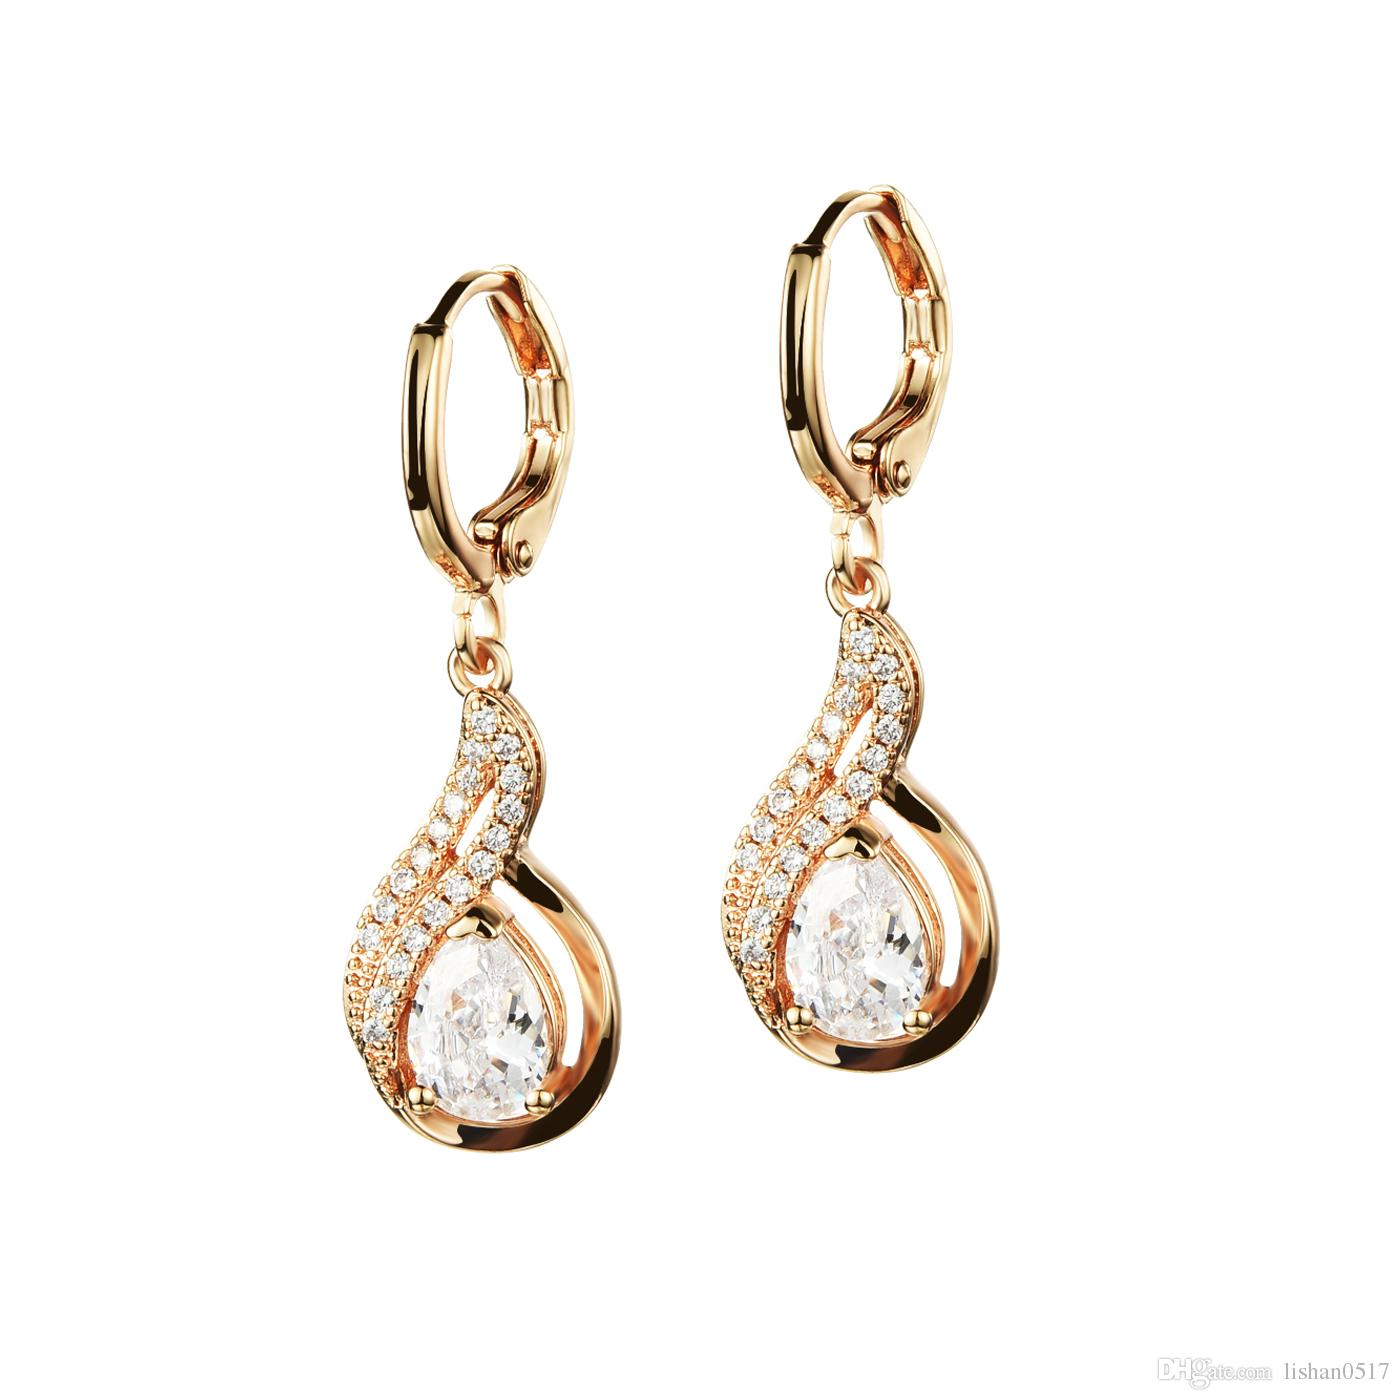 09b884f219 New Arrival Fashion Jewelry 18K Gold Plated Inlaid CZ Diamond Accessories  Women's Drop Earrings Simple Style Gift for Girl SKE658